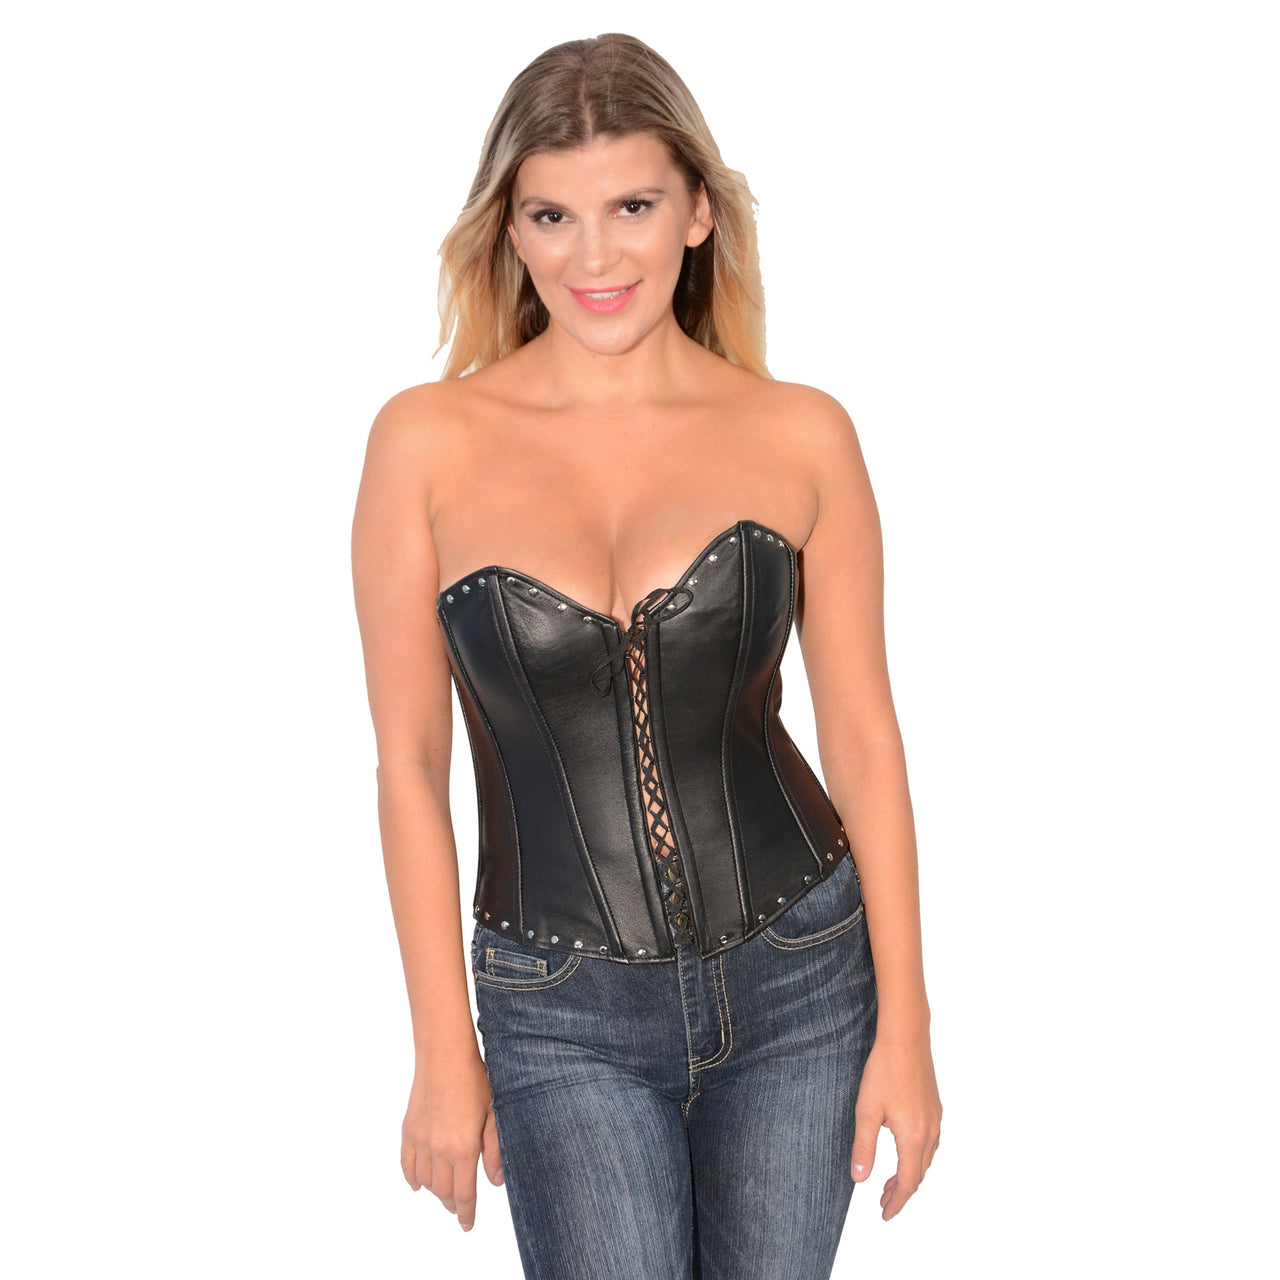 Ladies Lambskin Open Front Studded Corset - HighwayLeather